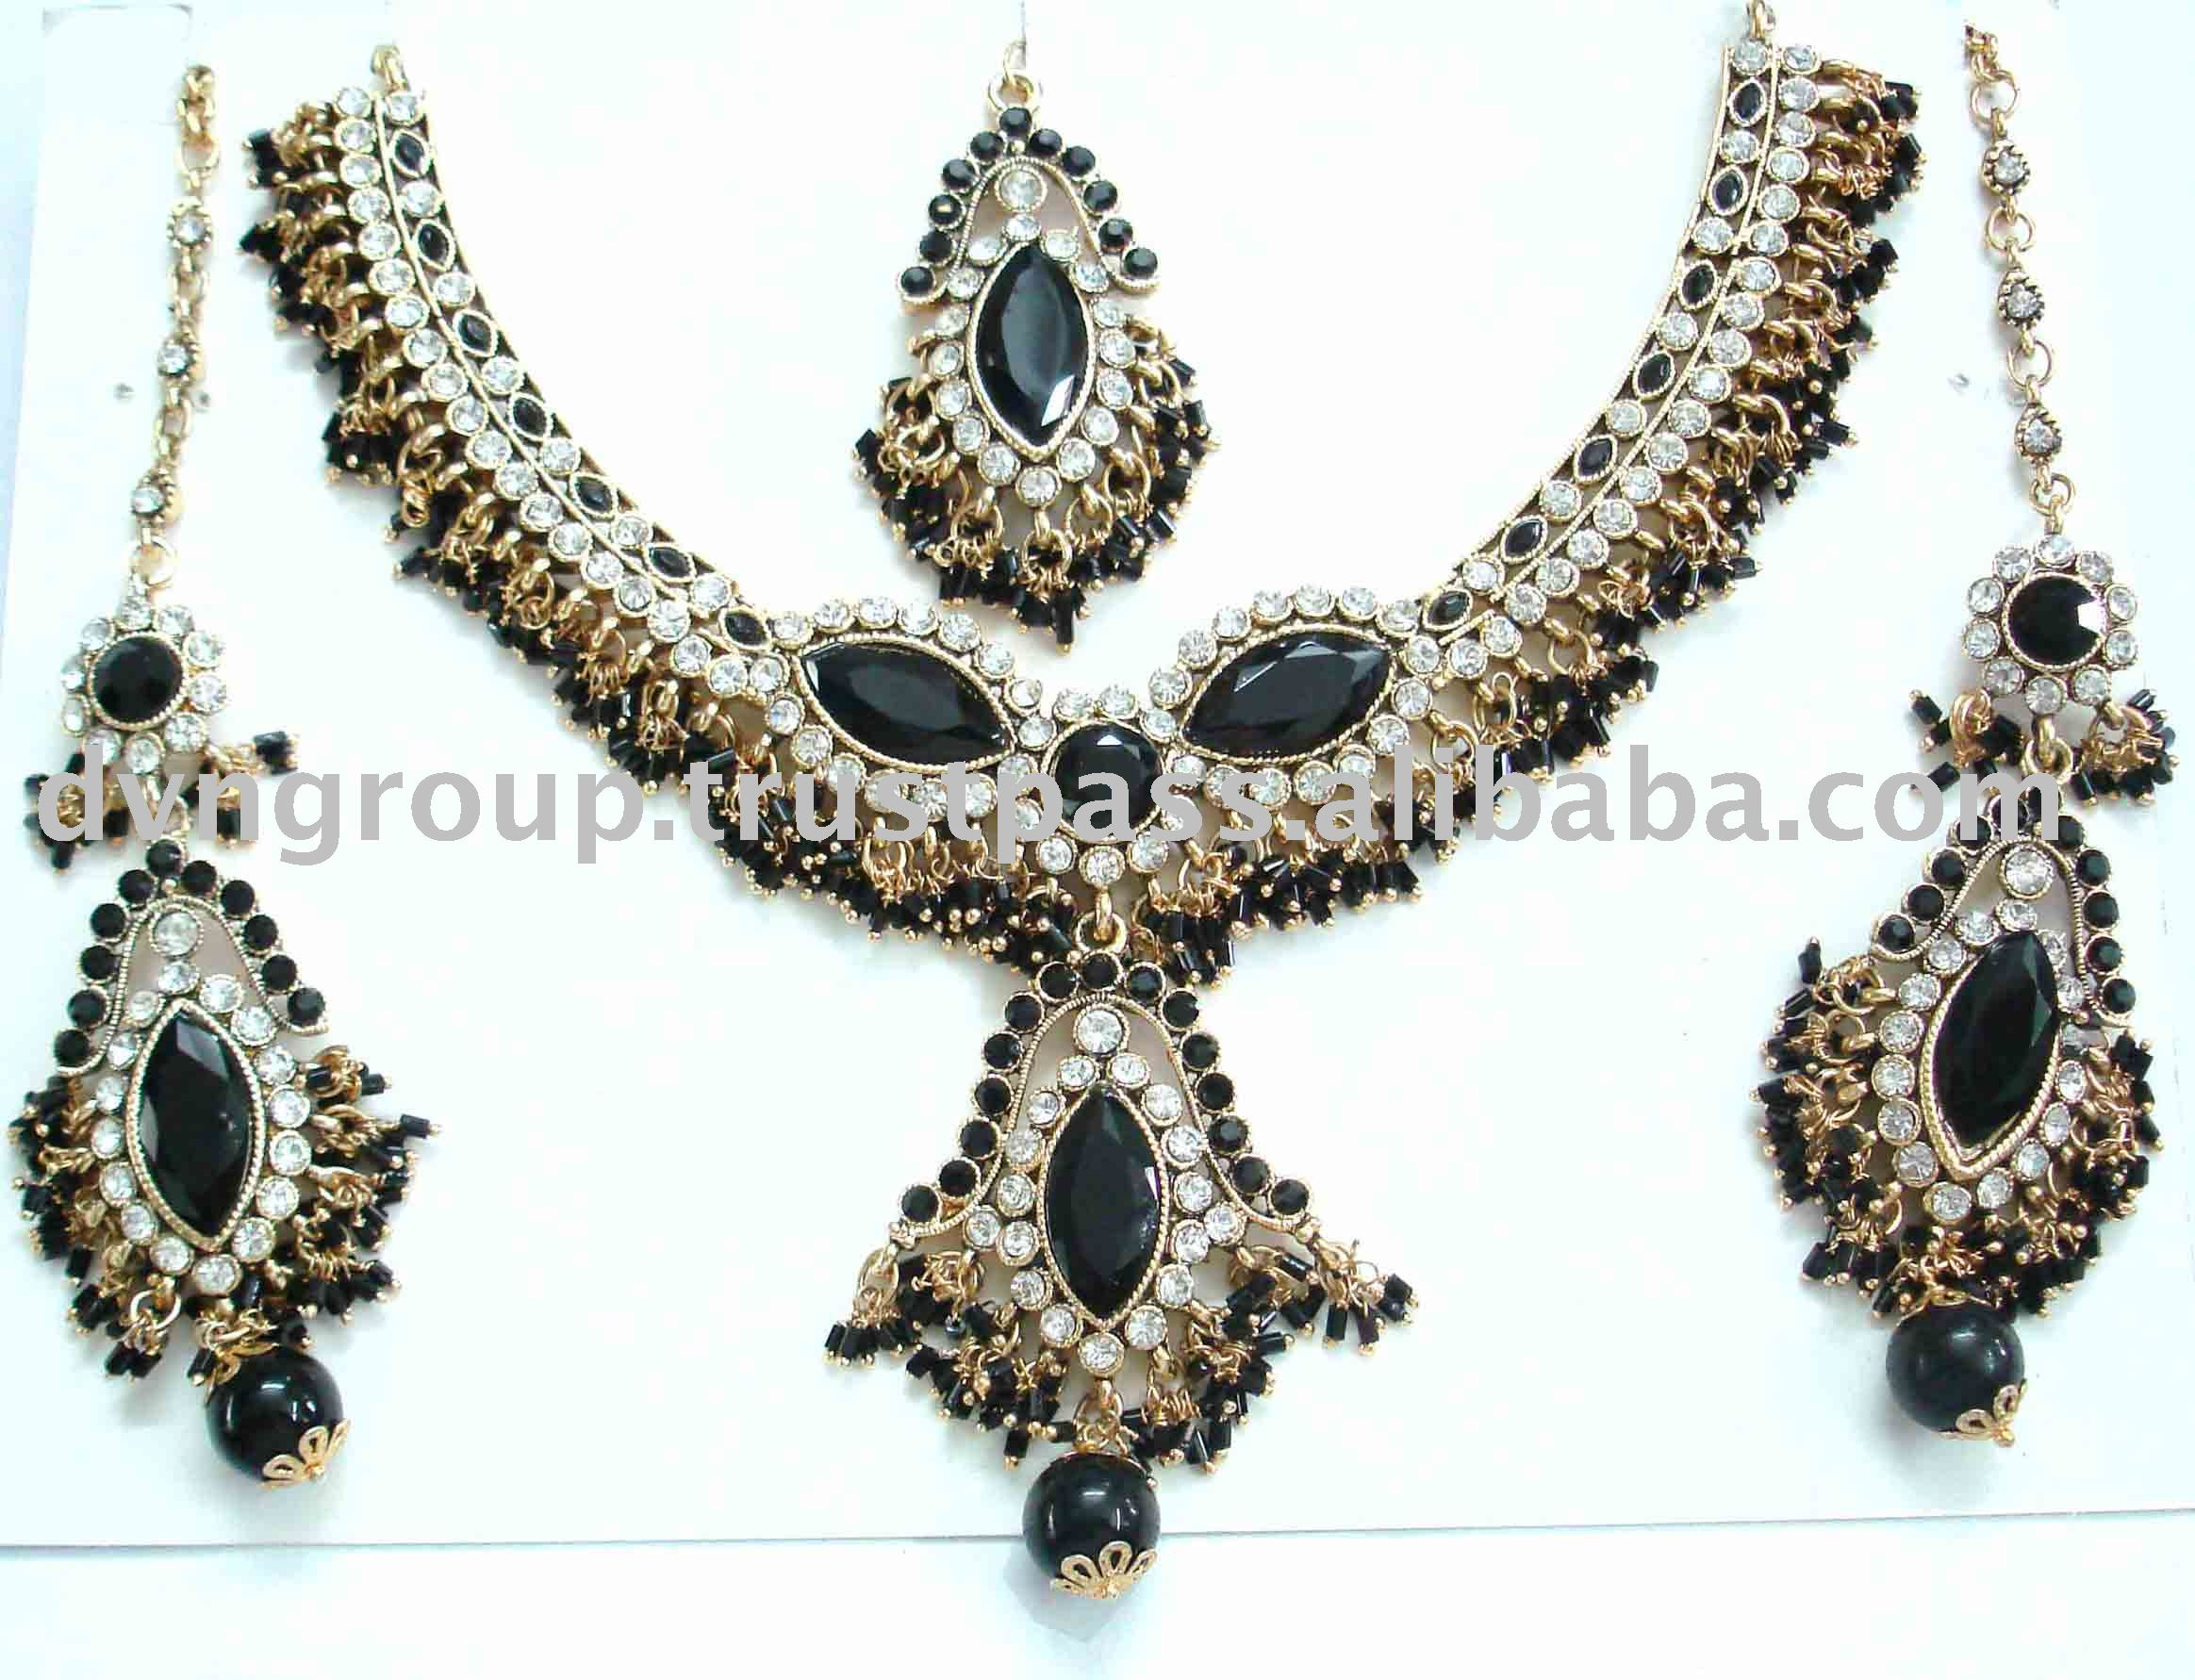 Indian Silver Jewelry - Buy Indian Jewelry Angles,Indian Jewelry ...